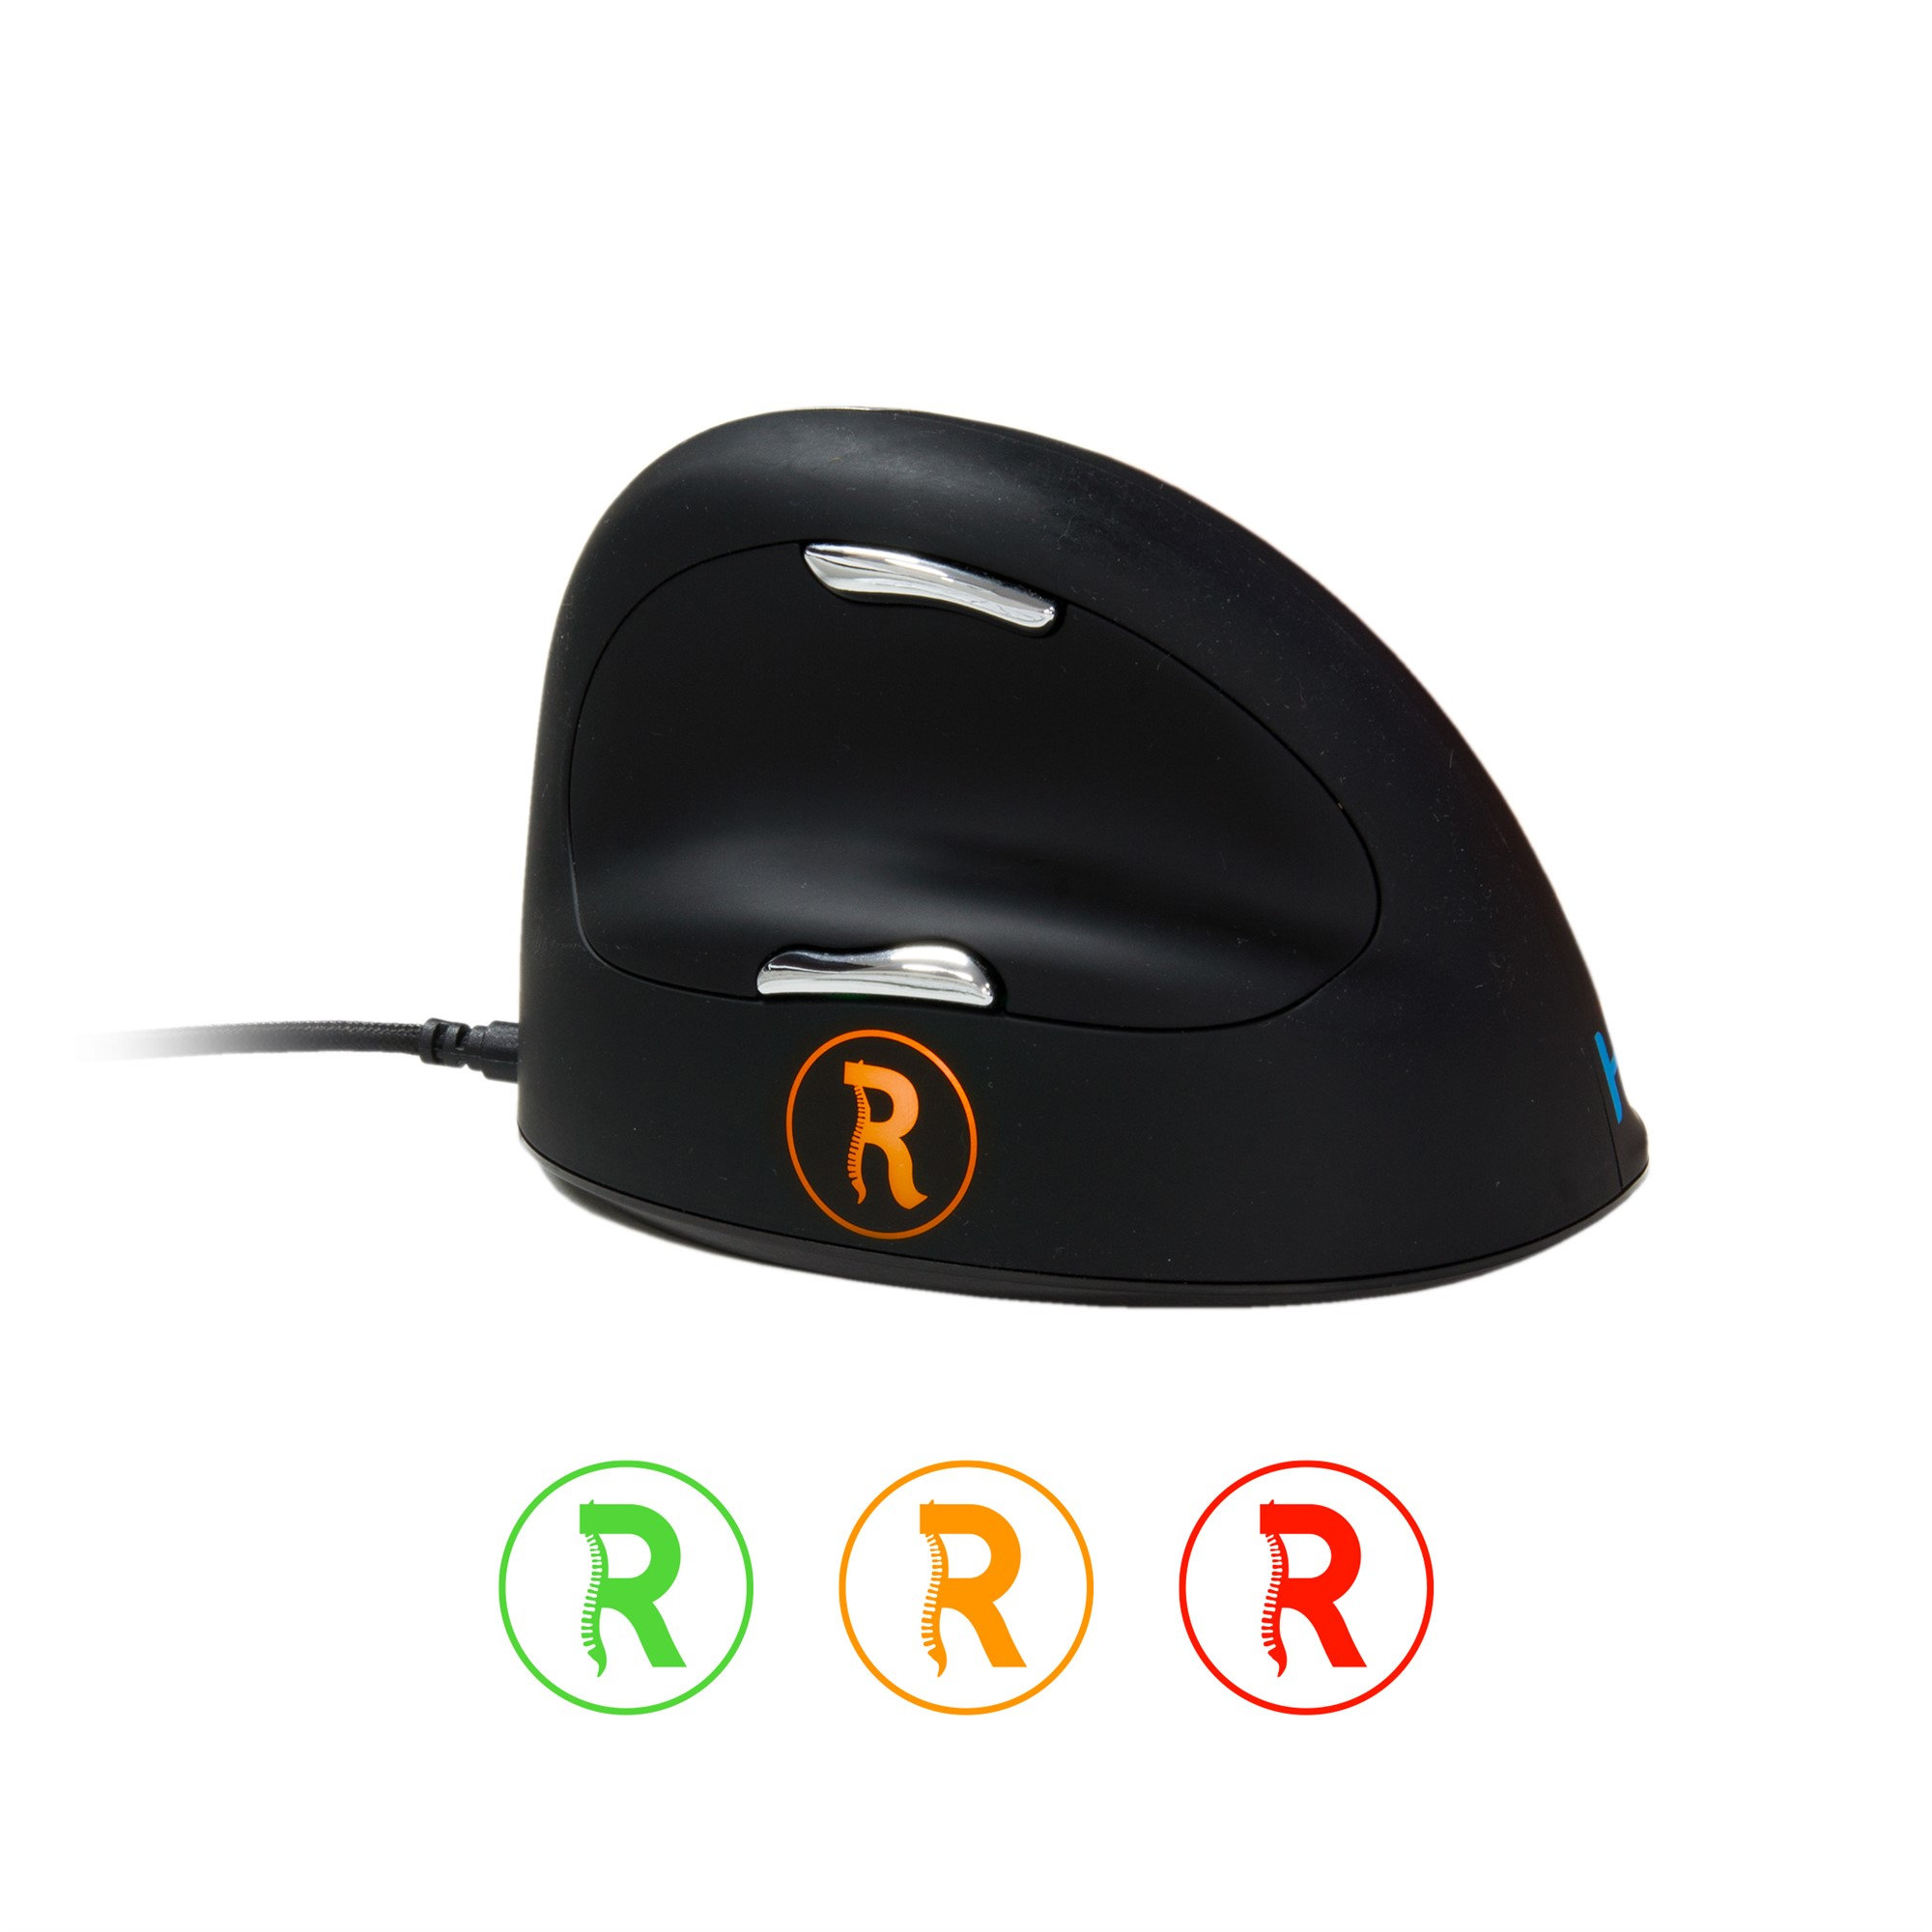 R-Go Tools Break HE Mouse, Ergonomic mouse, Anti-RSI software, Large (above 185mm), Right Handed, Wired